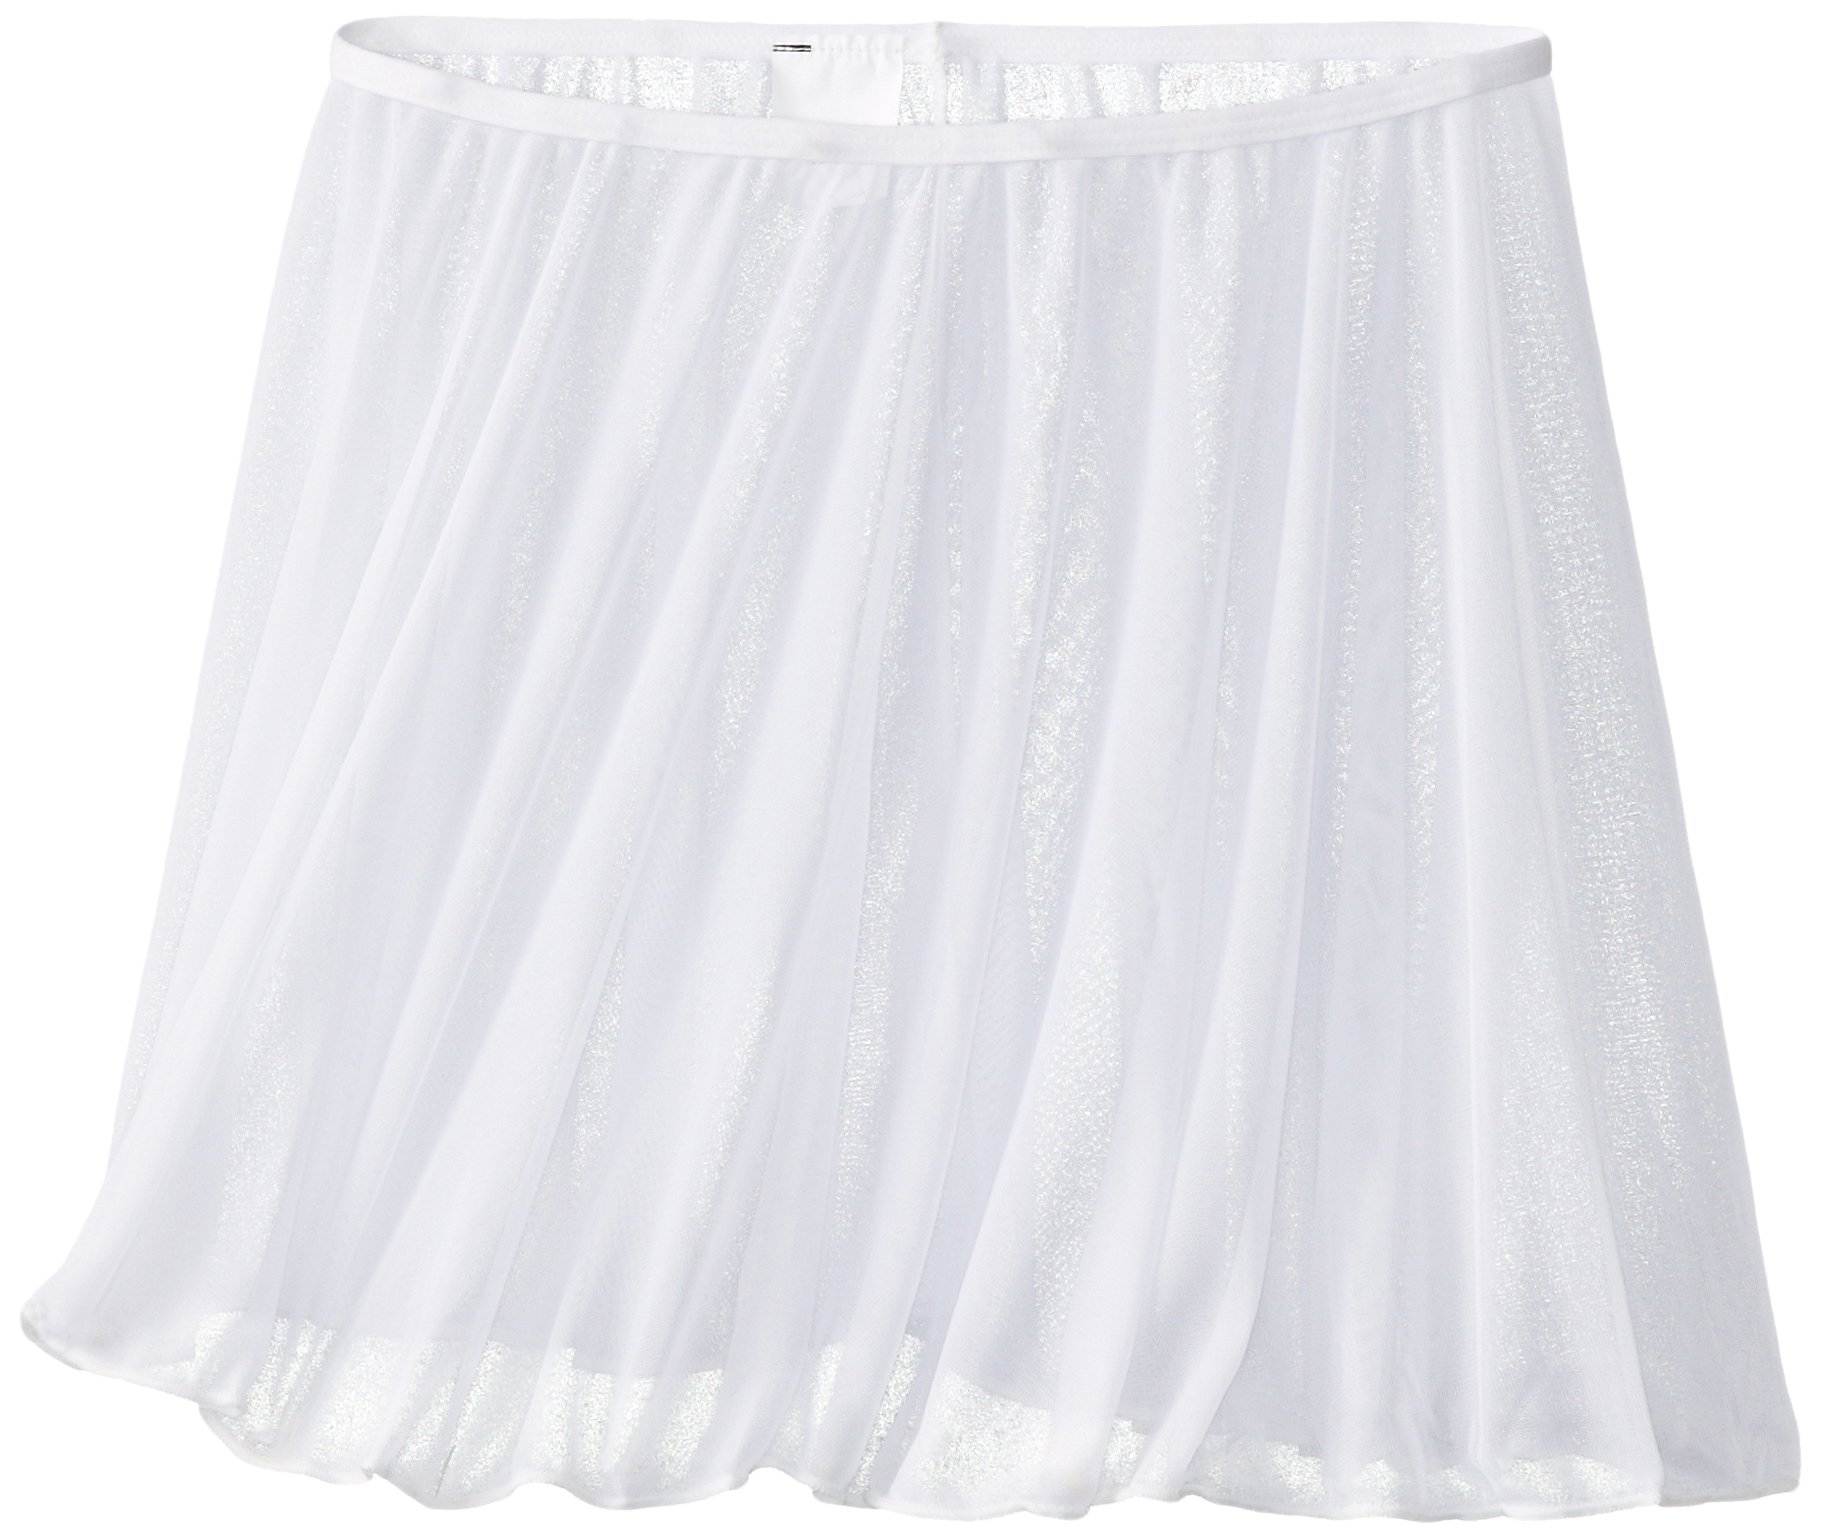 Clementine Apparel Girls' Little (2-7) Chiffon Ruffle Pull On Wavy Dance Ballet Skirt Dancwear Costumes, White, Large/X-Large by Clementine Apparel